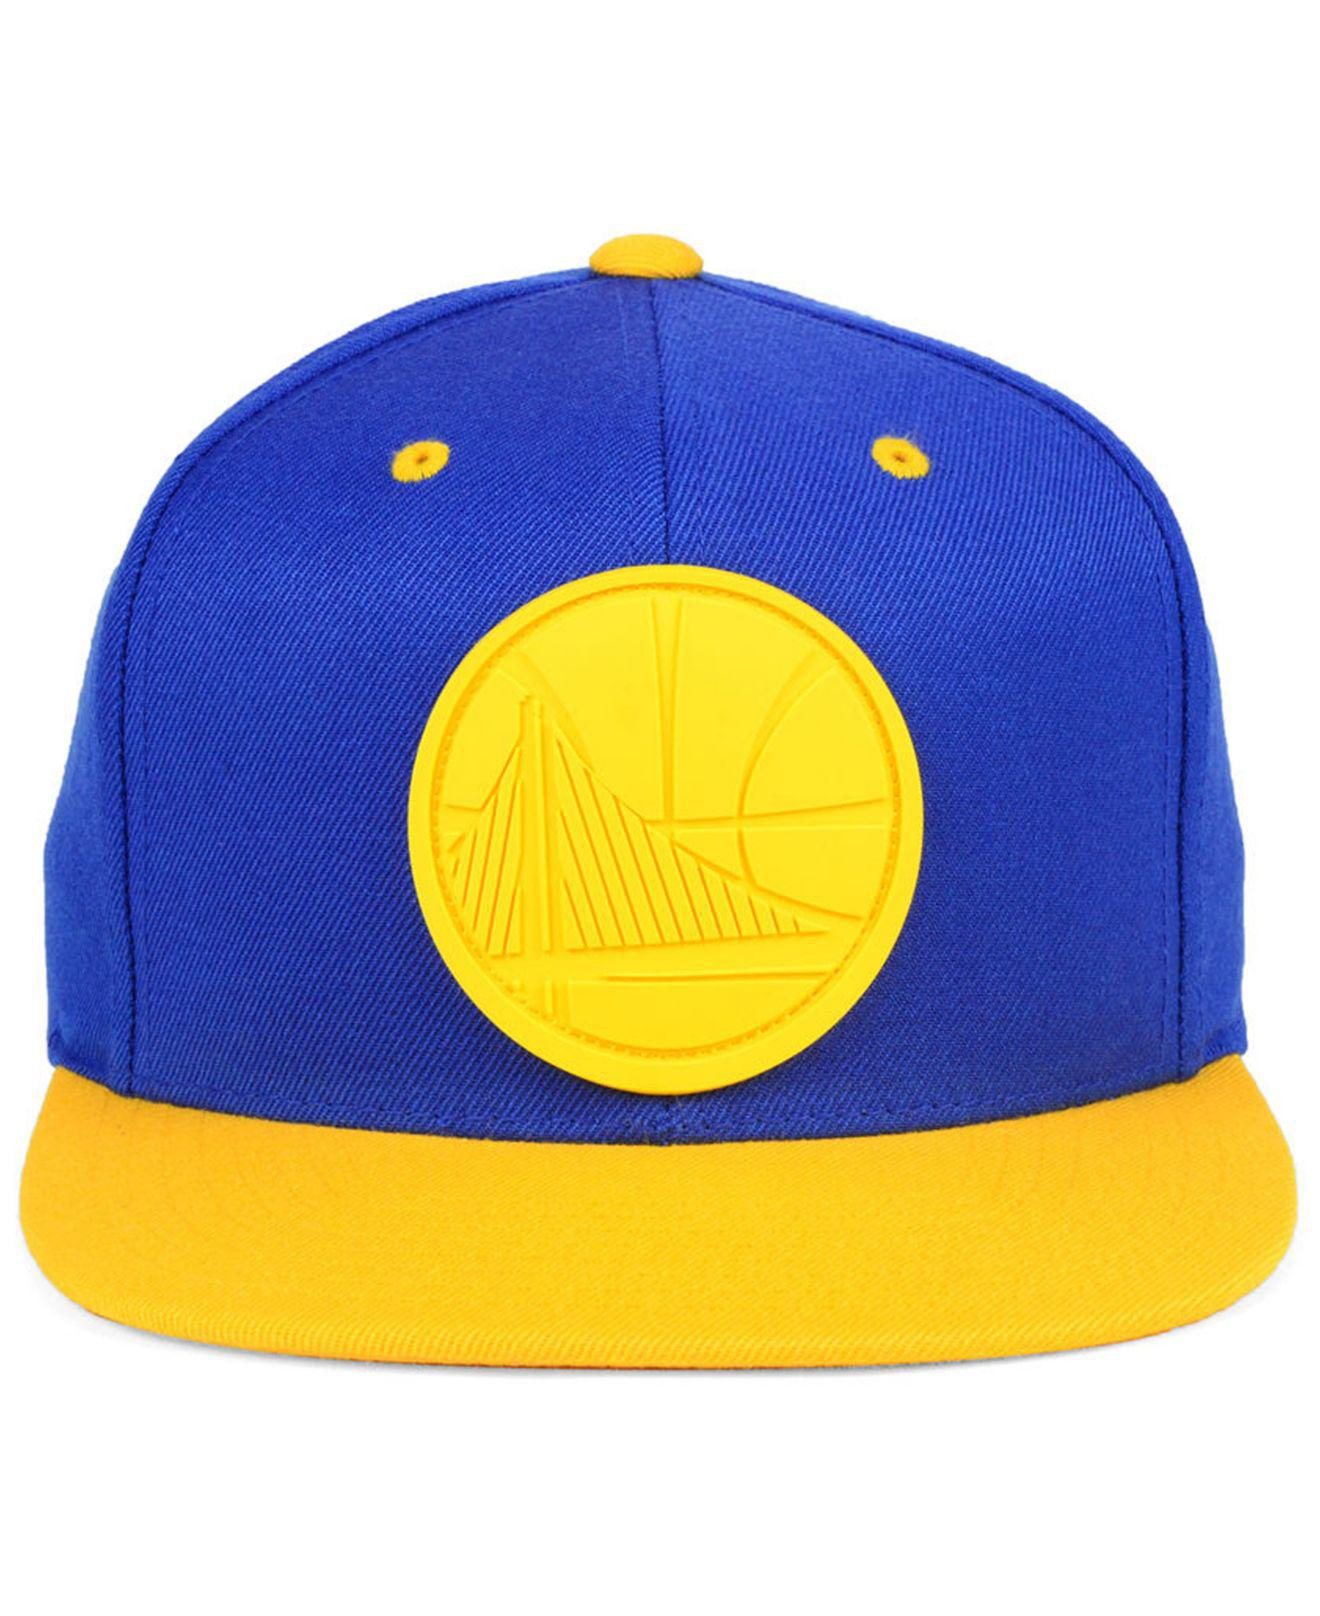 hot sale online 62e16 6db71 Mitchell   Ness Golden State Warriors Rubber Weld Snapback Cap in ...